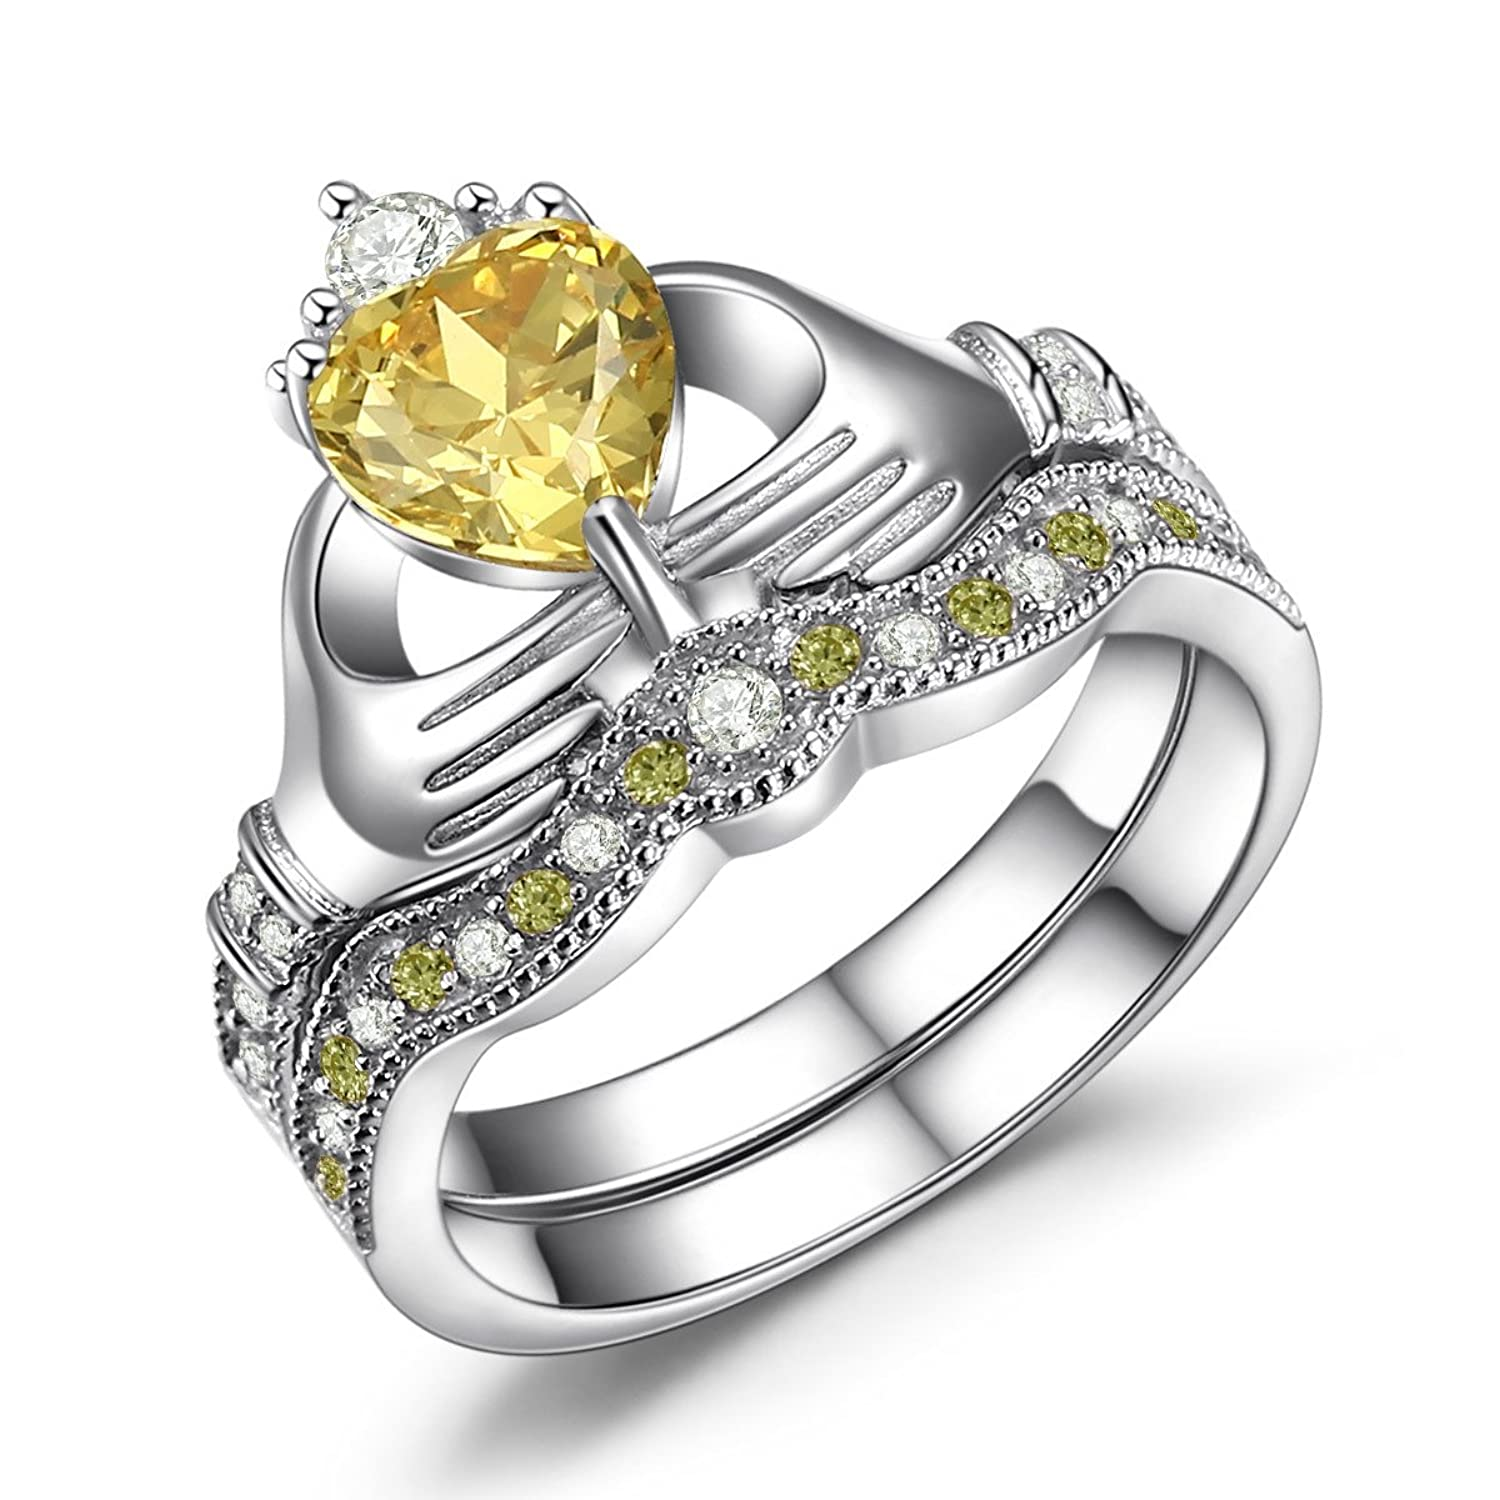 Caperci Sterling Silver Claddagh Ring, Heart Shaped Created Citrine Wedding Engagement Ring Sets